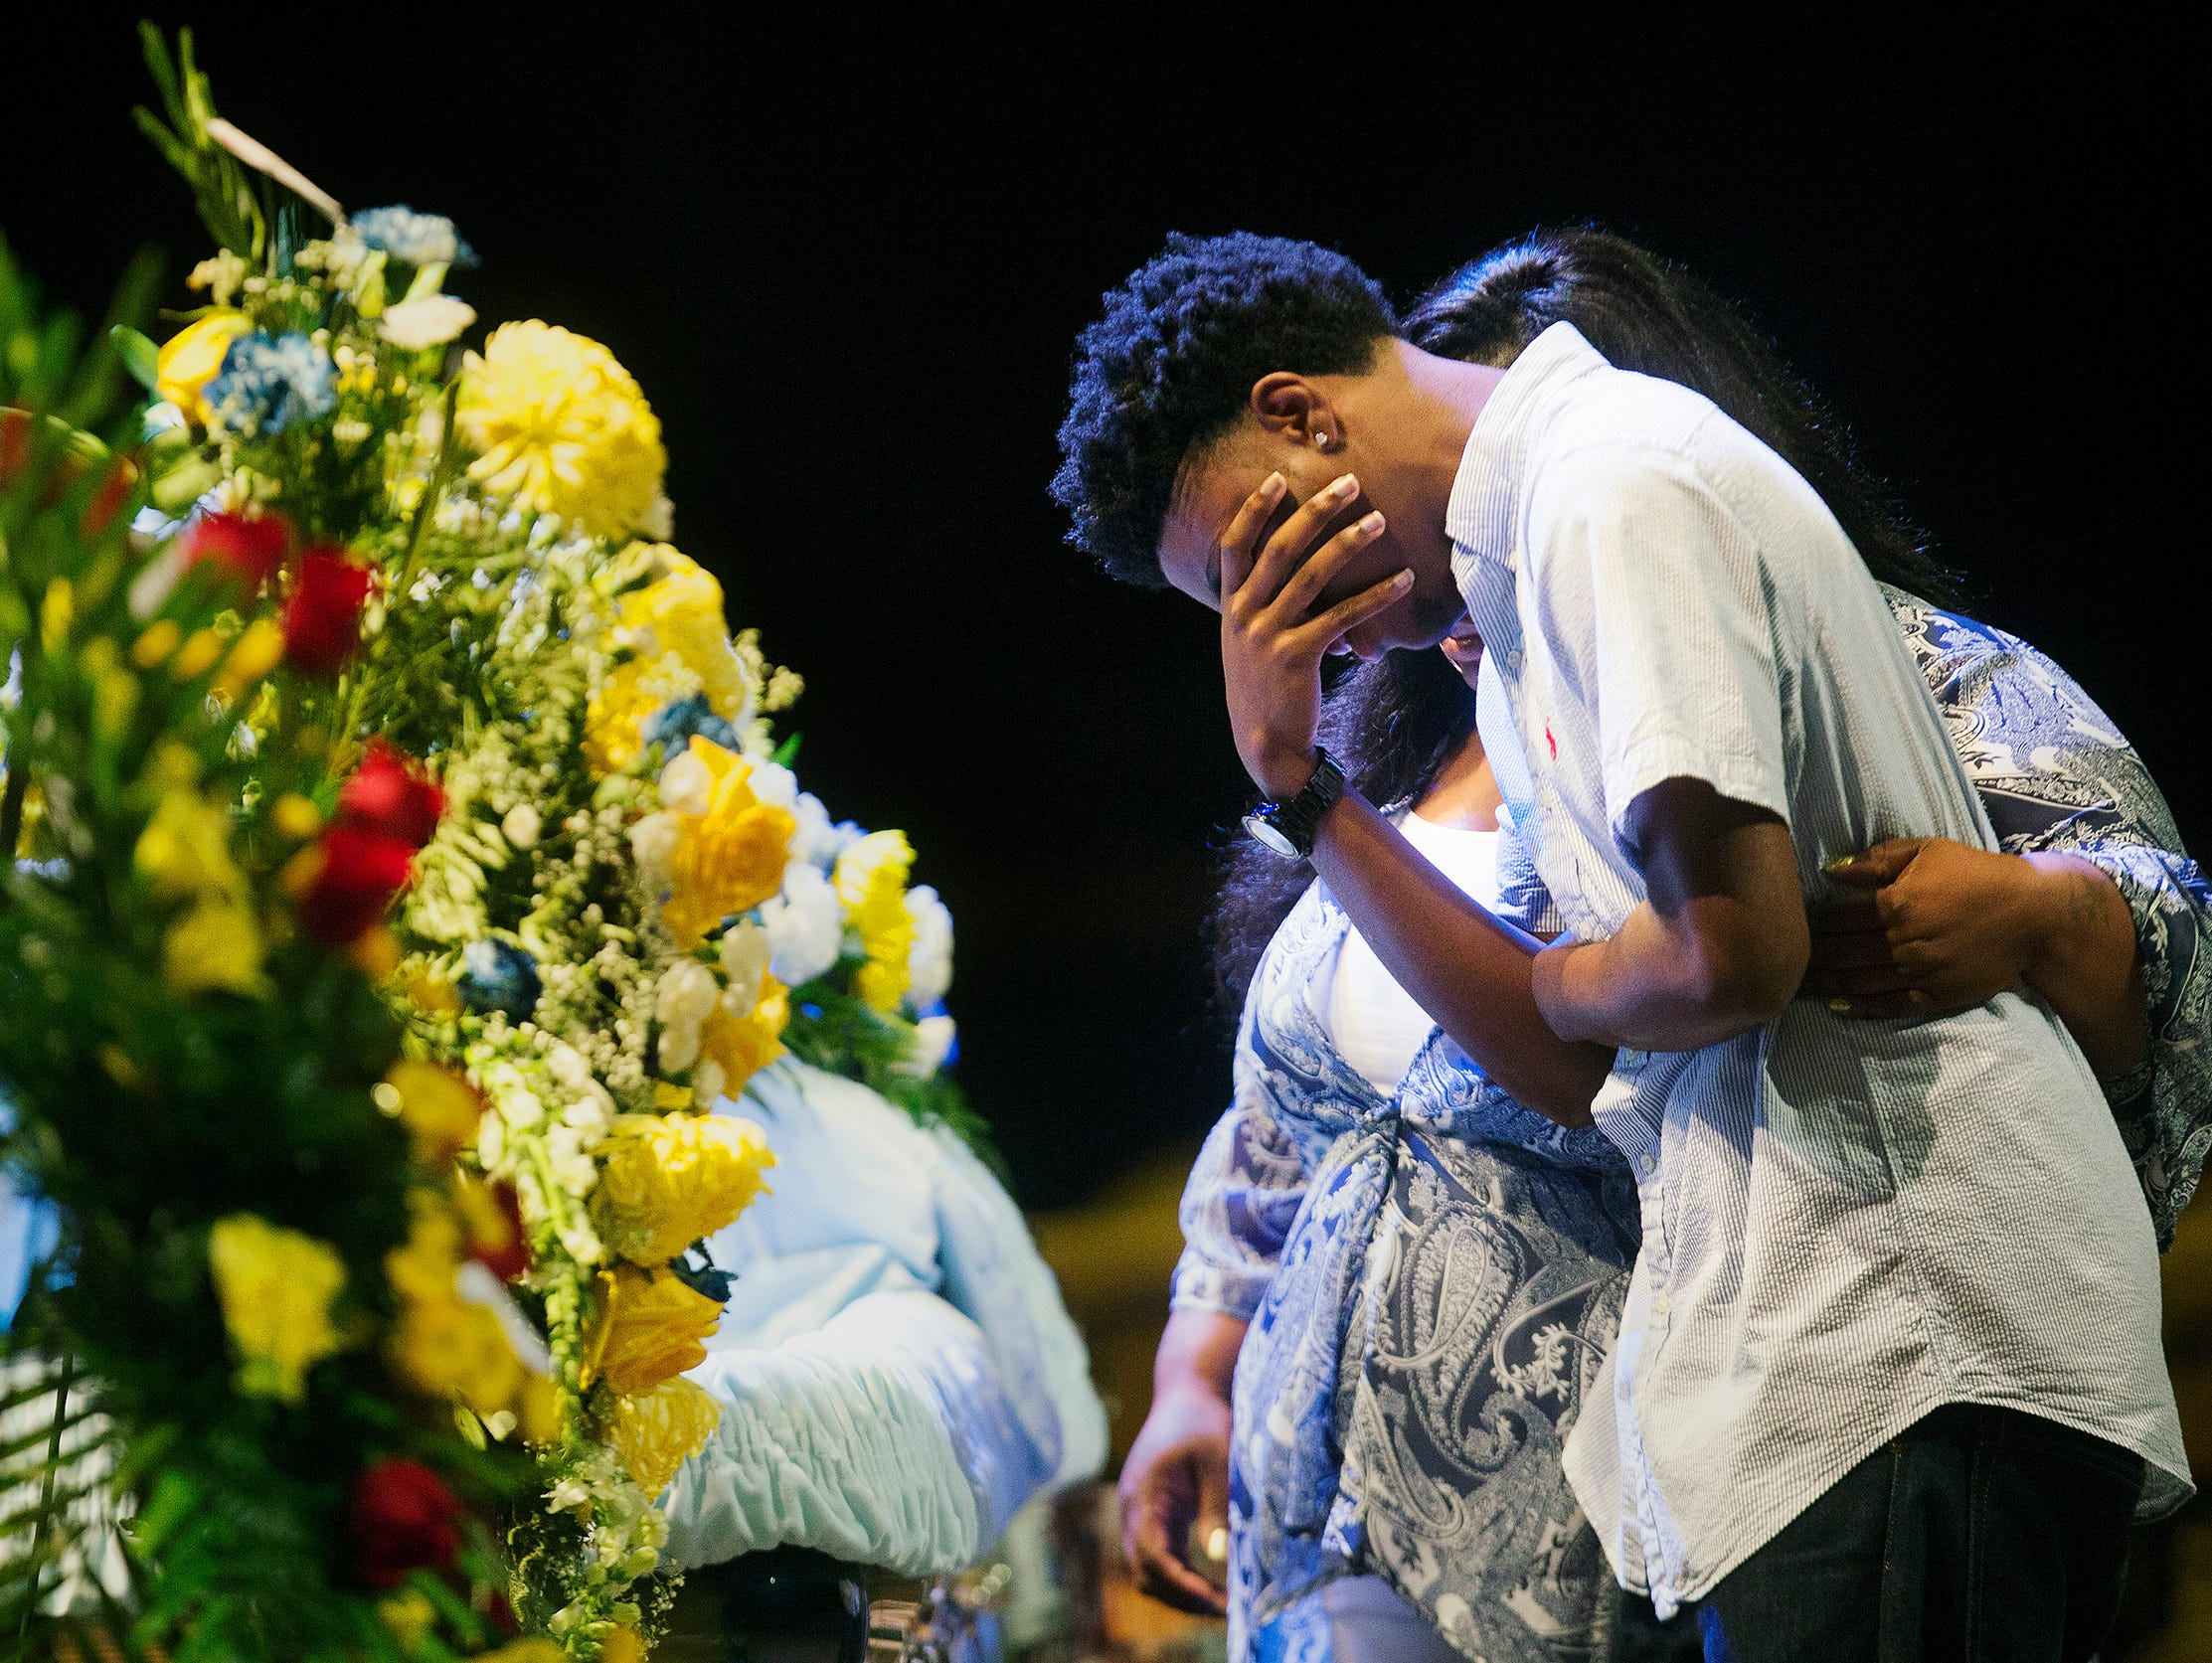 """Anthony Sibert, 17, weeps at Stef'An Strawder's casket Saturday during Strawder's funeral at New Life Assembly of God in Lehigh Acres. Strawder was killed recently in the Club Blu nightclub shooting in Fort Myers. """"Memories,"""" of playing basketball with Strawder are what Sibert said he would cherish most."""